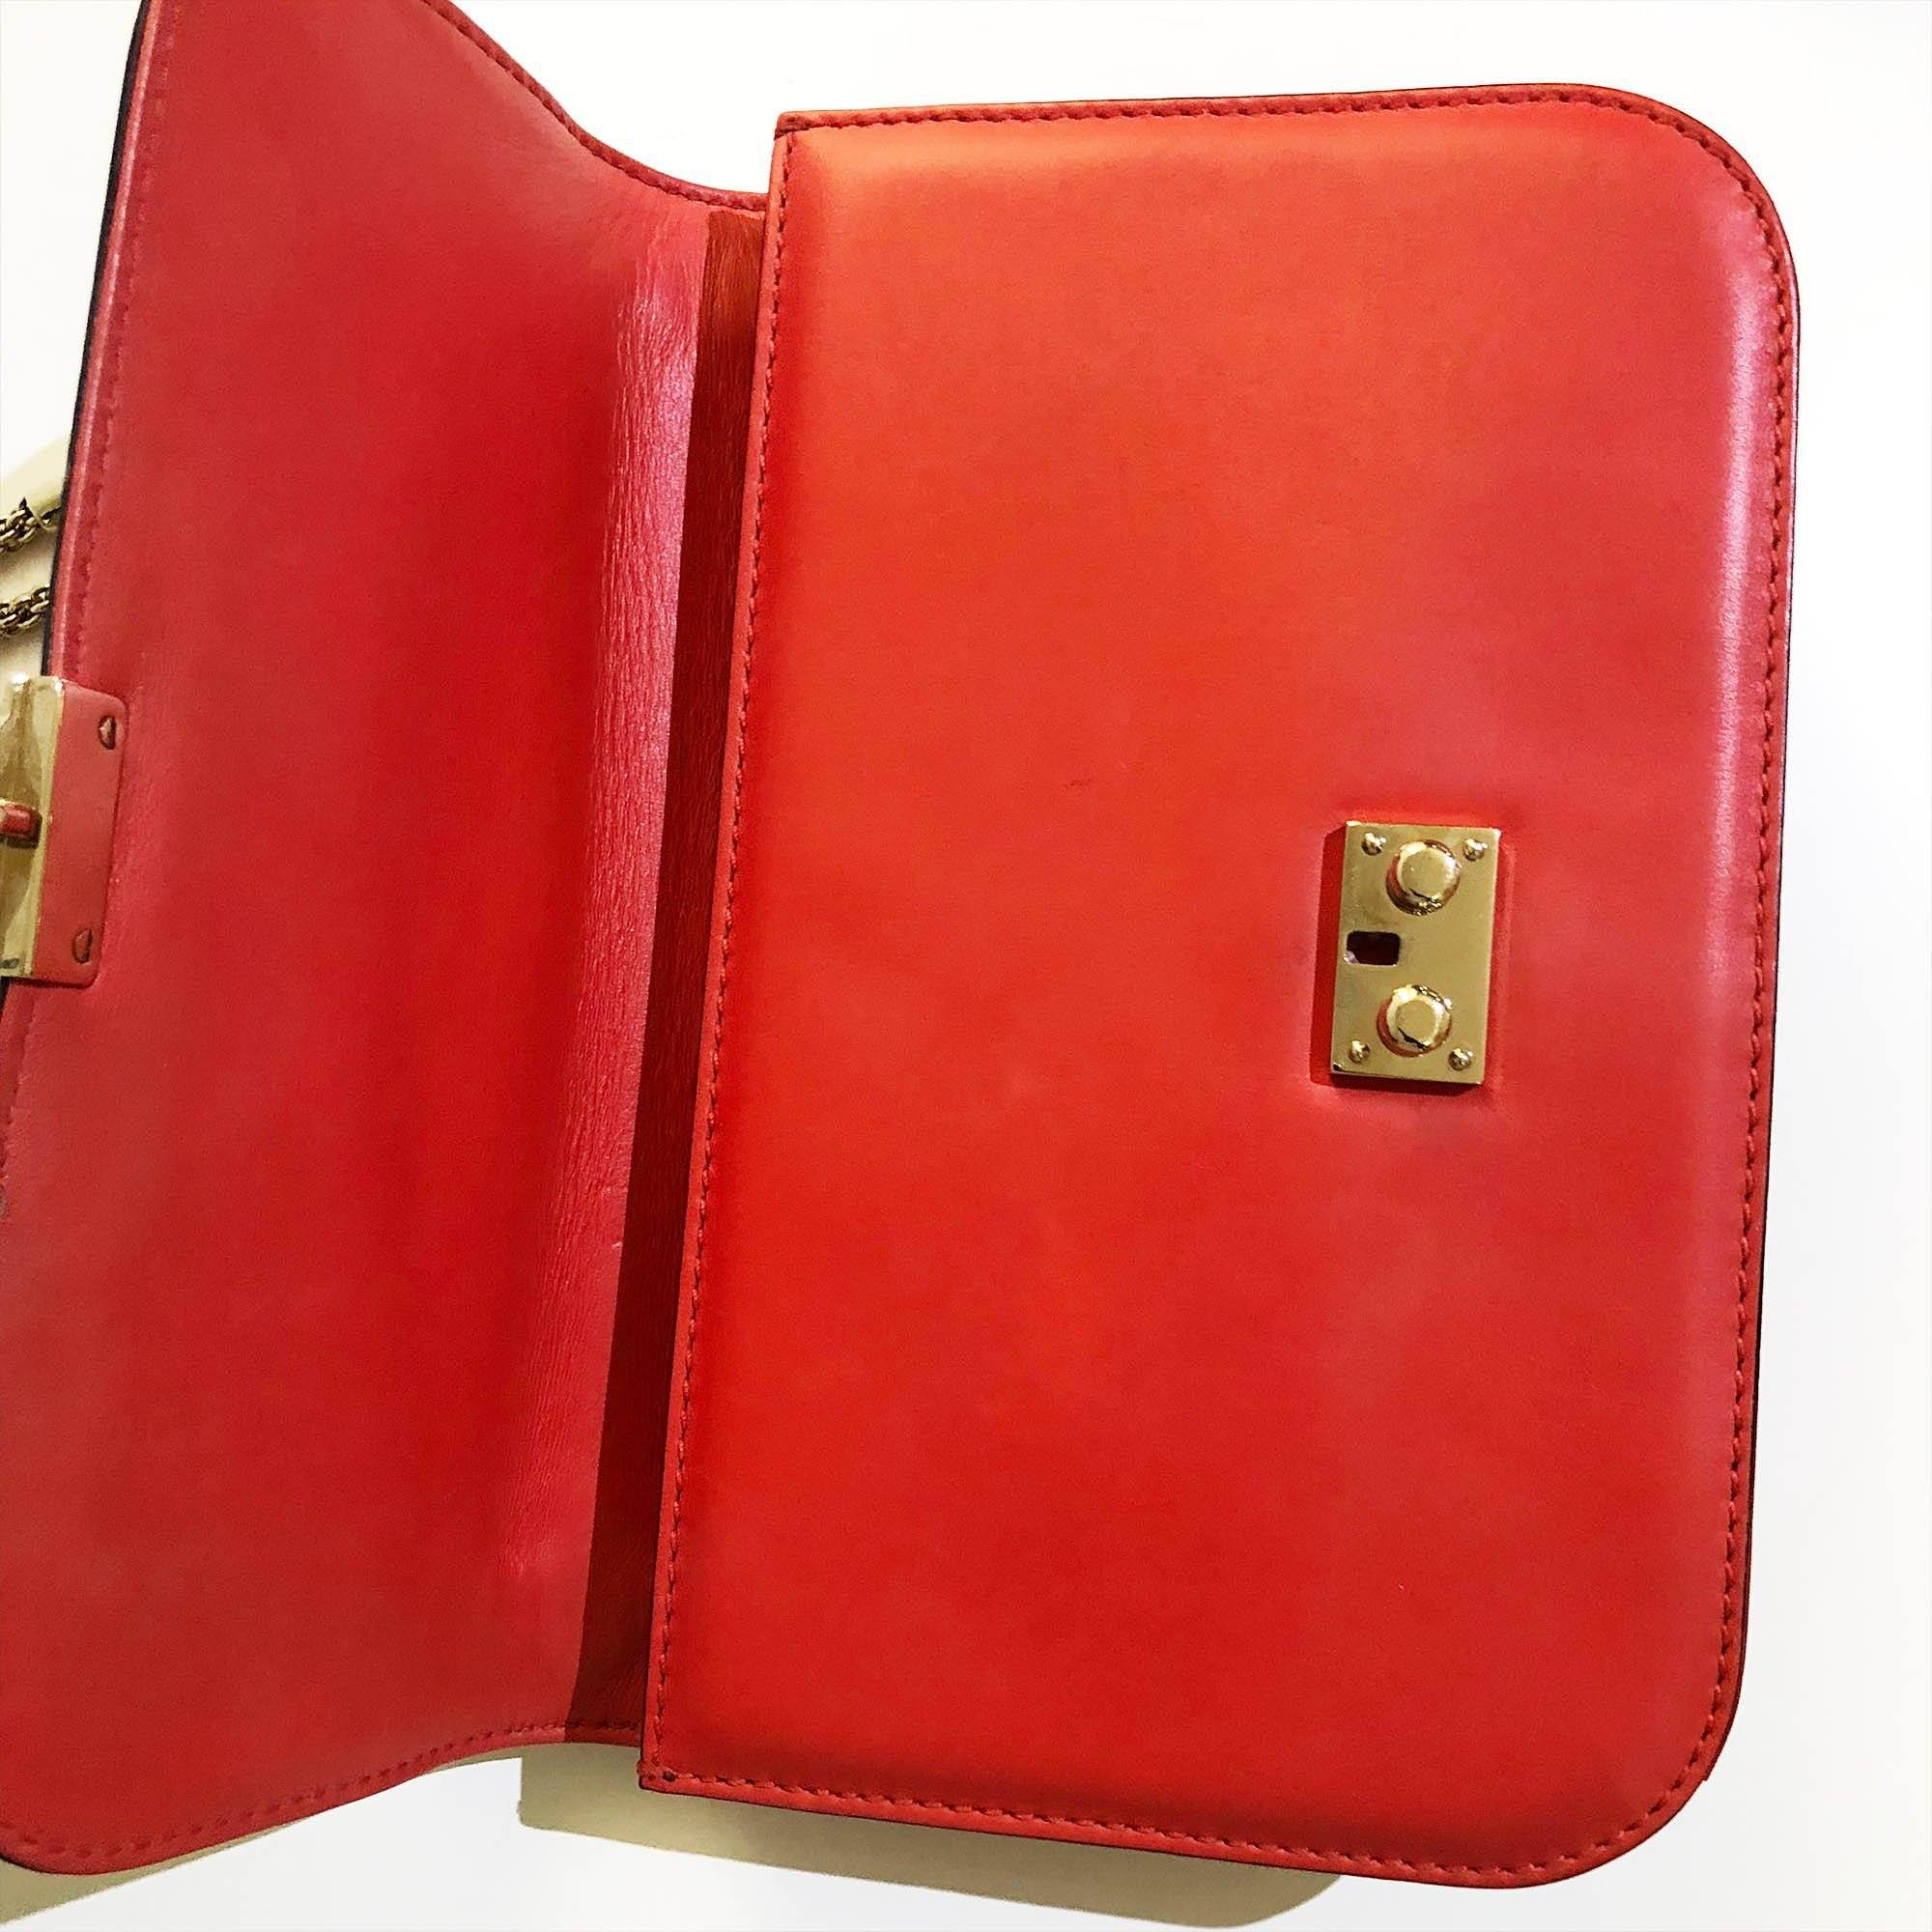 Valentino Garavani Red Lock leather shoulder bag